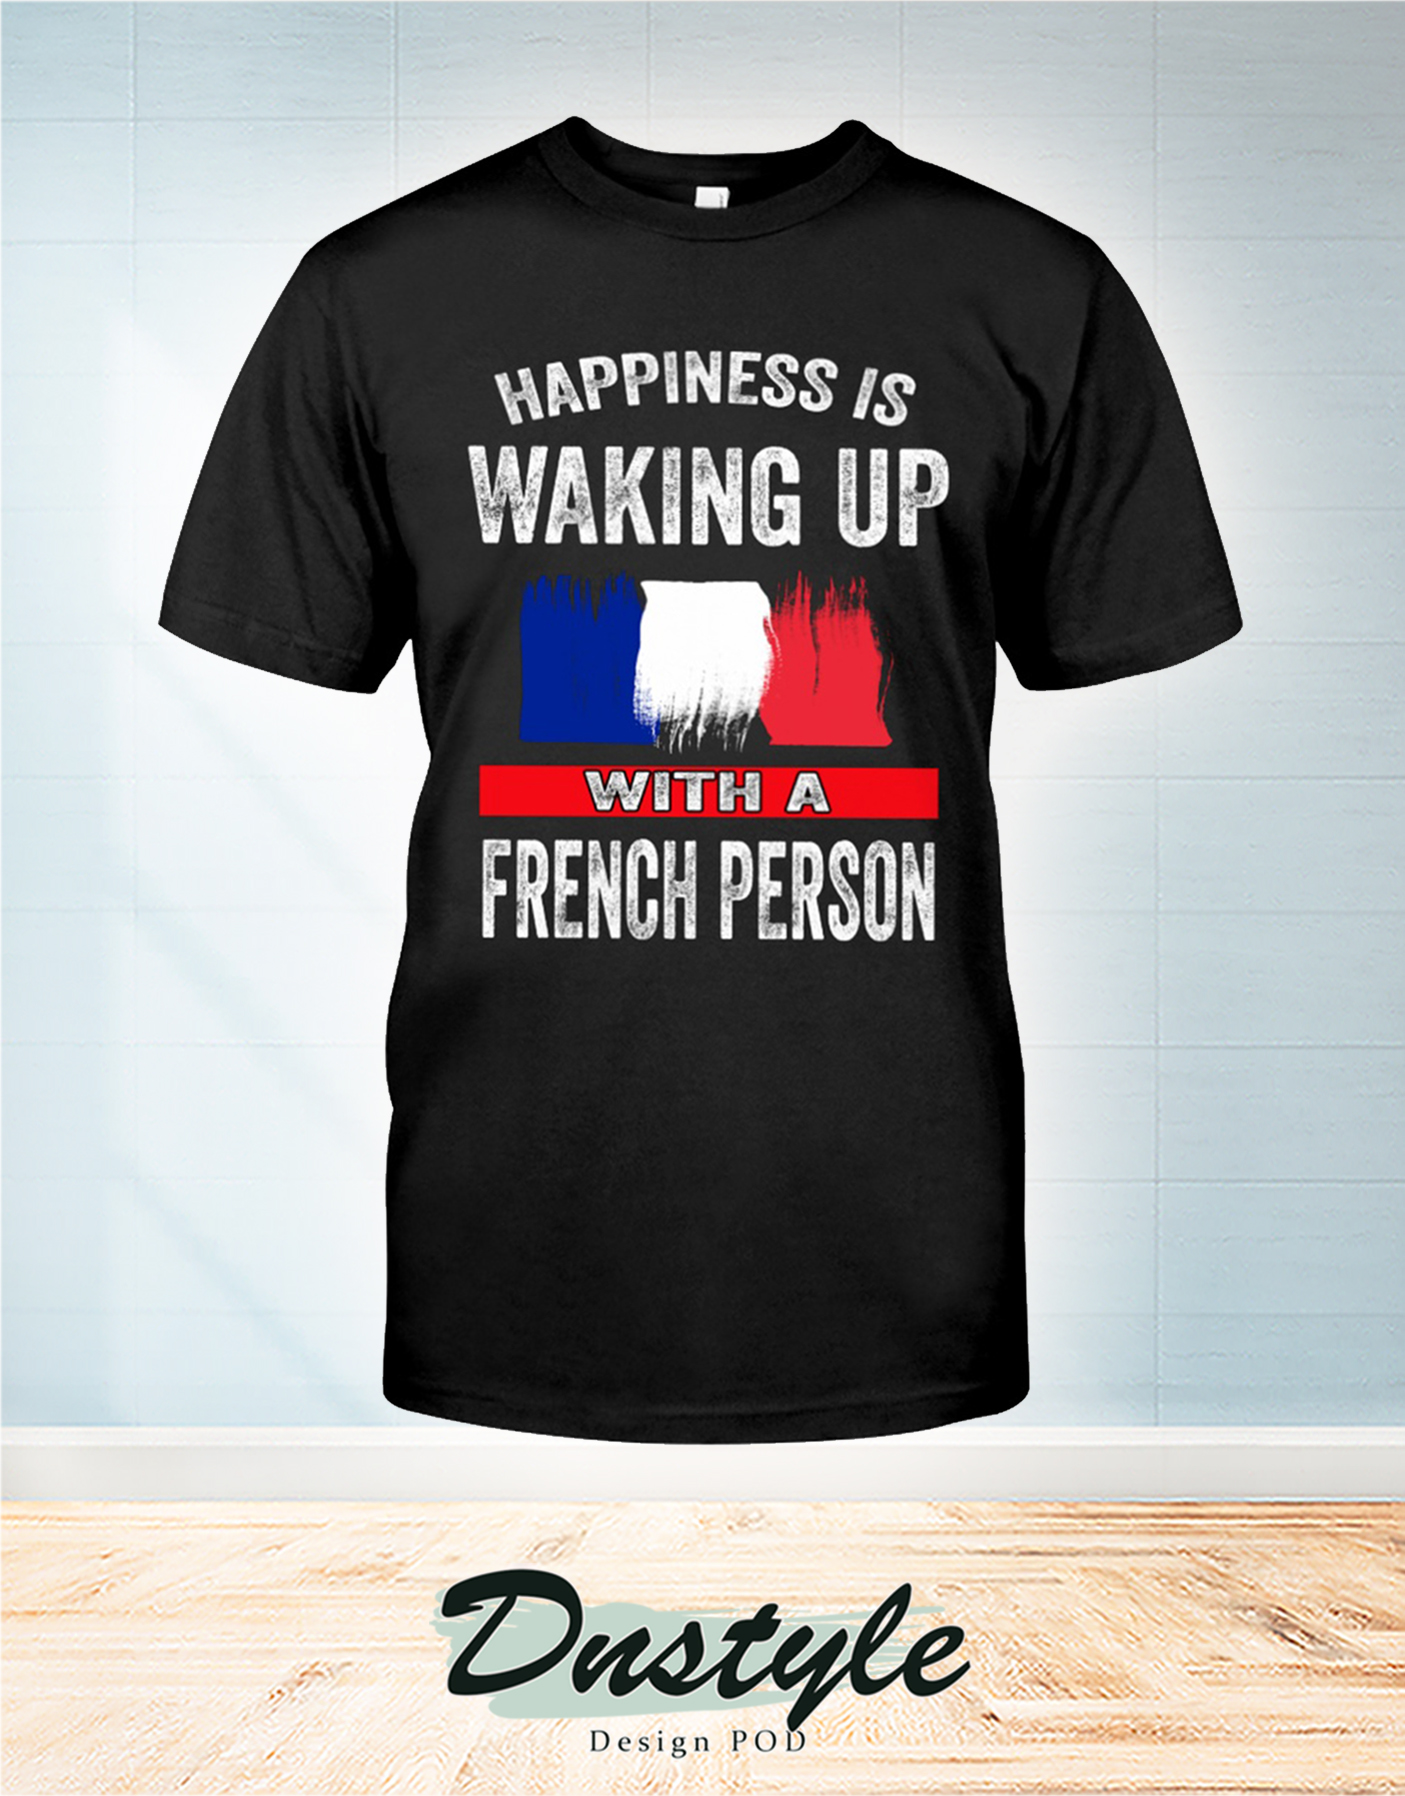 Happiness is waking up with a french person t-shirt